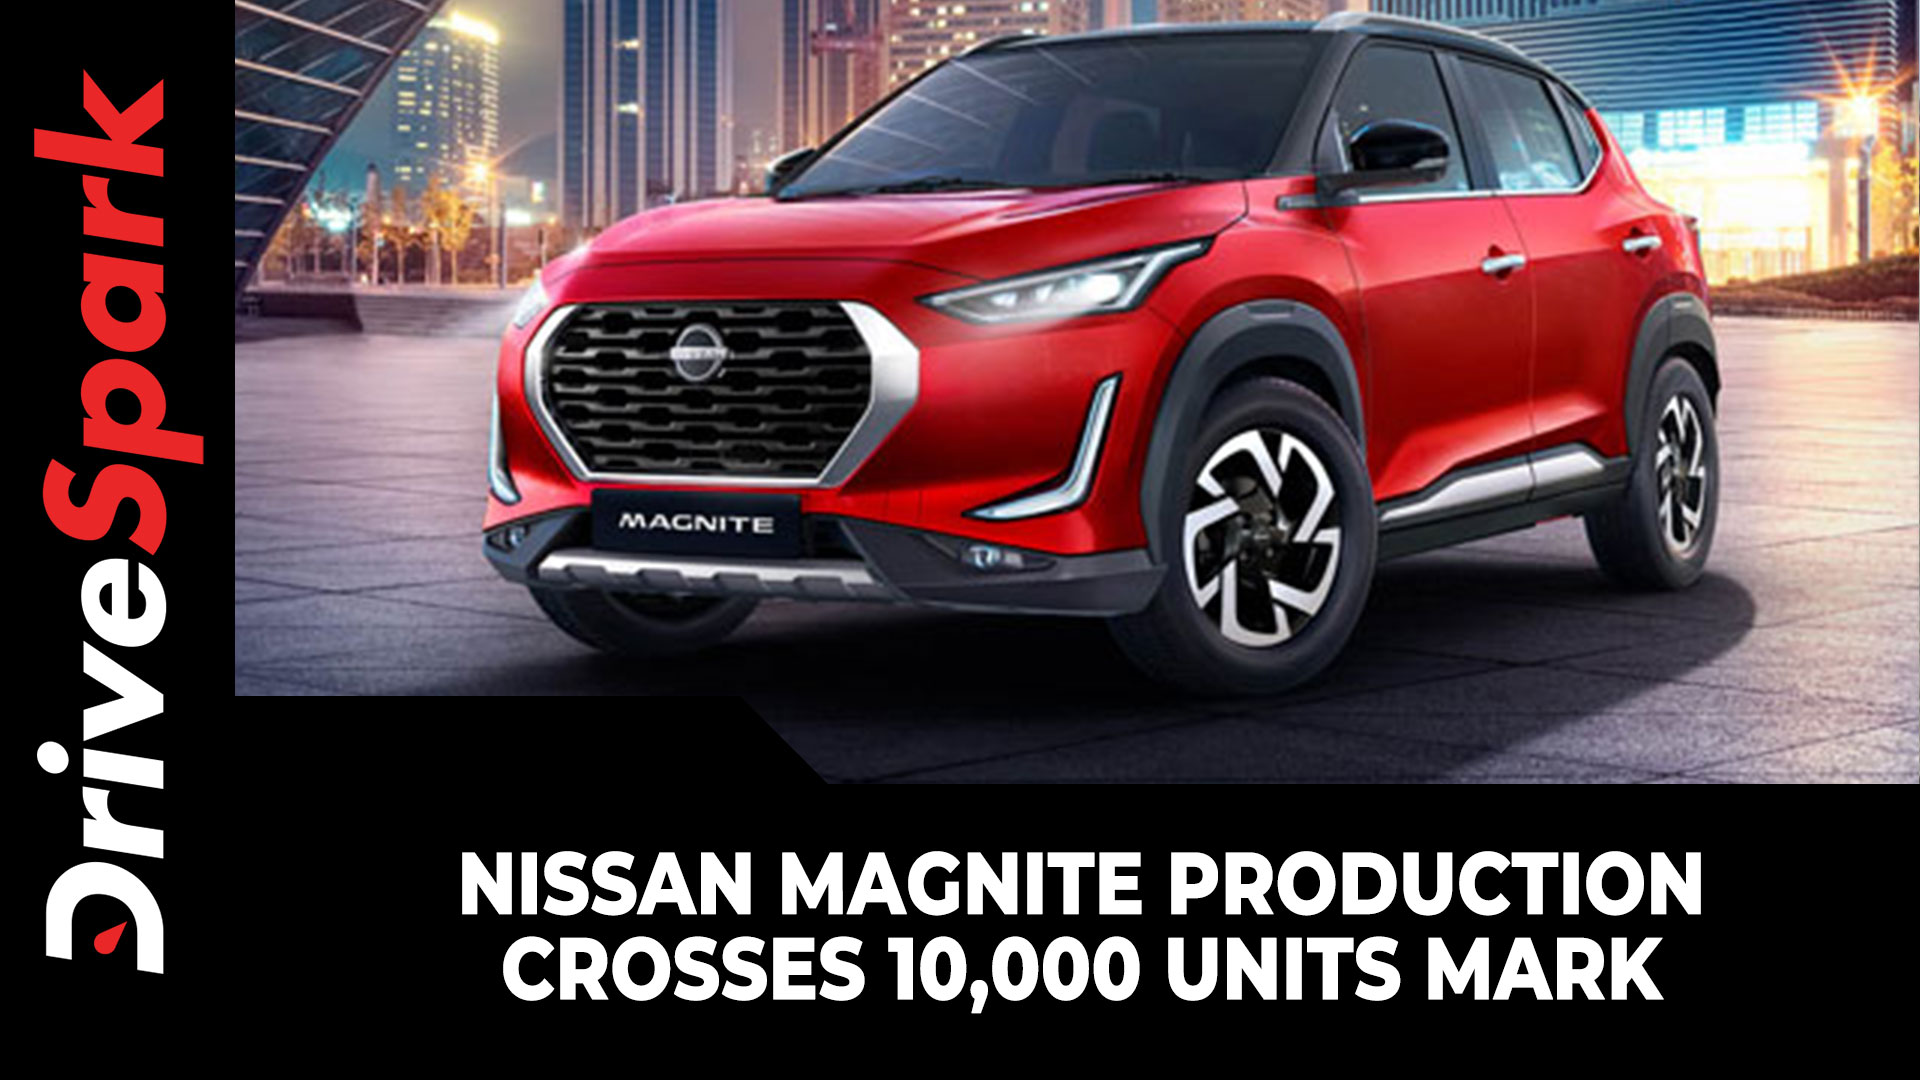 Nissan Magnite Production Crosses 10,000 Units Mark | New Milestone Achieved!